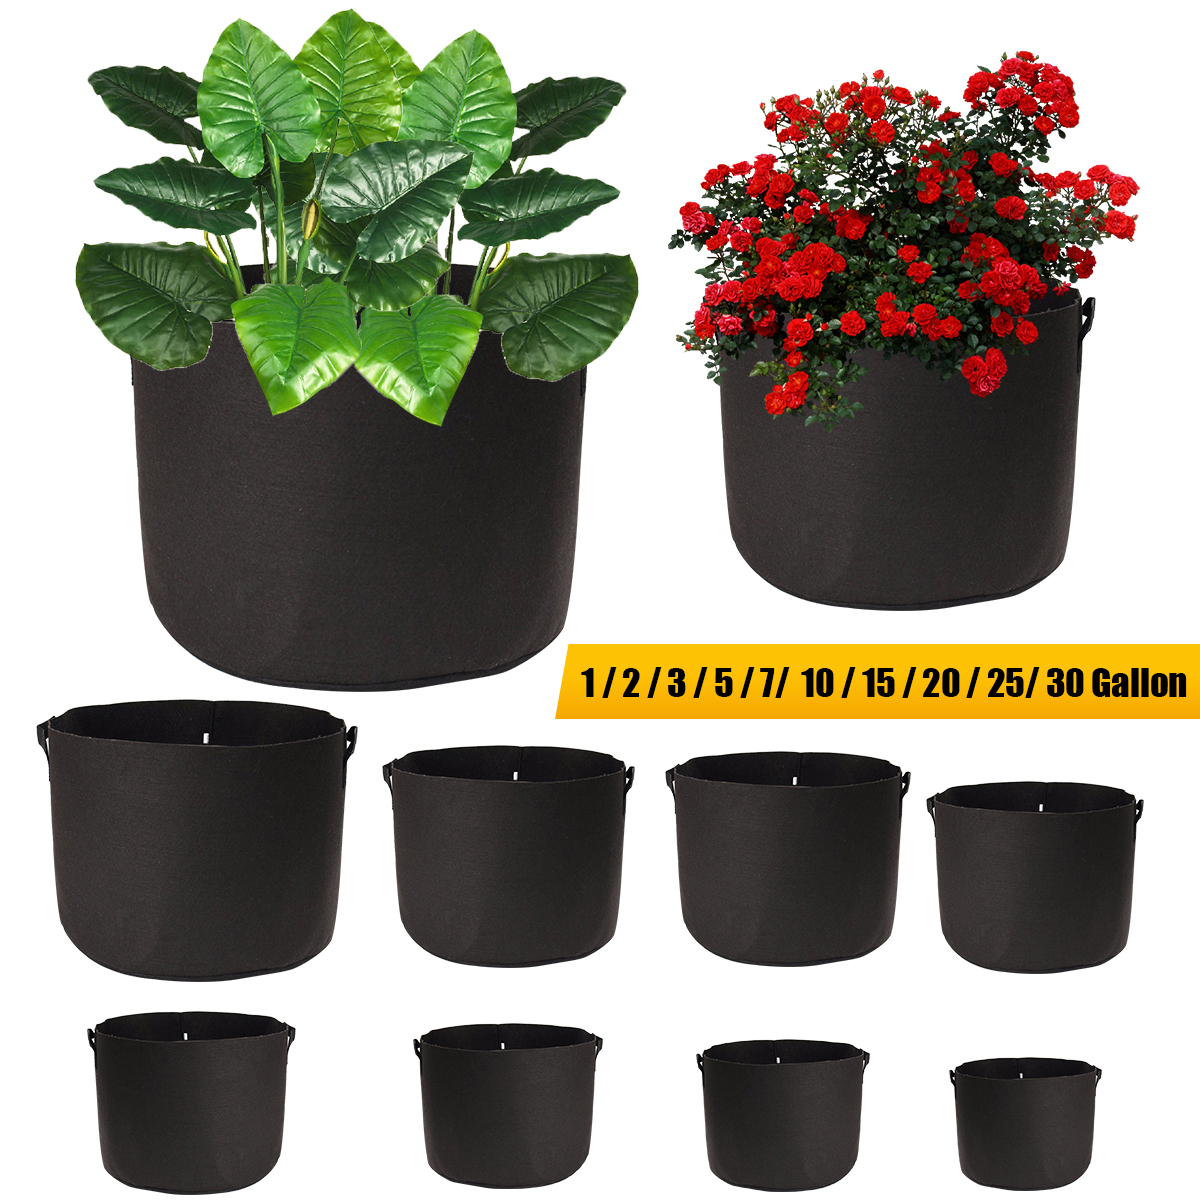 Black Fabric Pots Plant Grow Bags with Handles Planting Bag Seedling Flowerpot Size 1, 2, 3, 5, 7, 10, 15, 20 ,25, 30 Gallon(China)